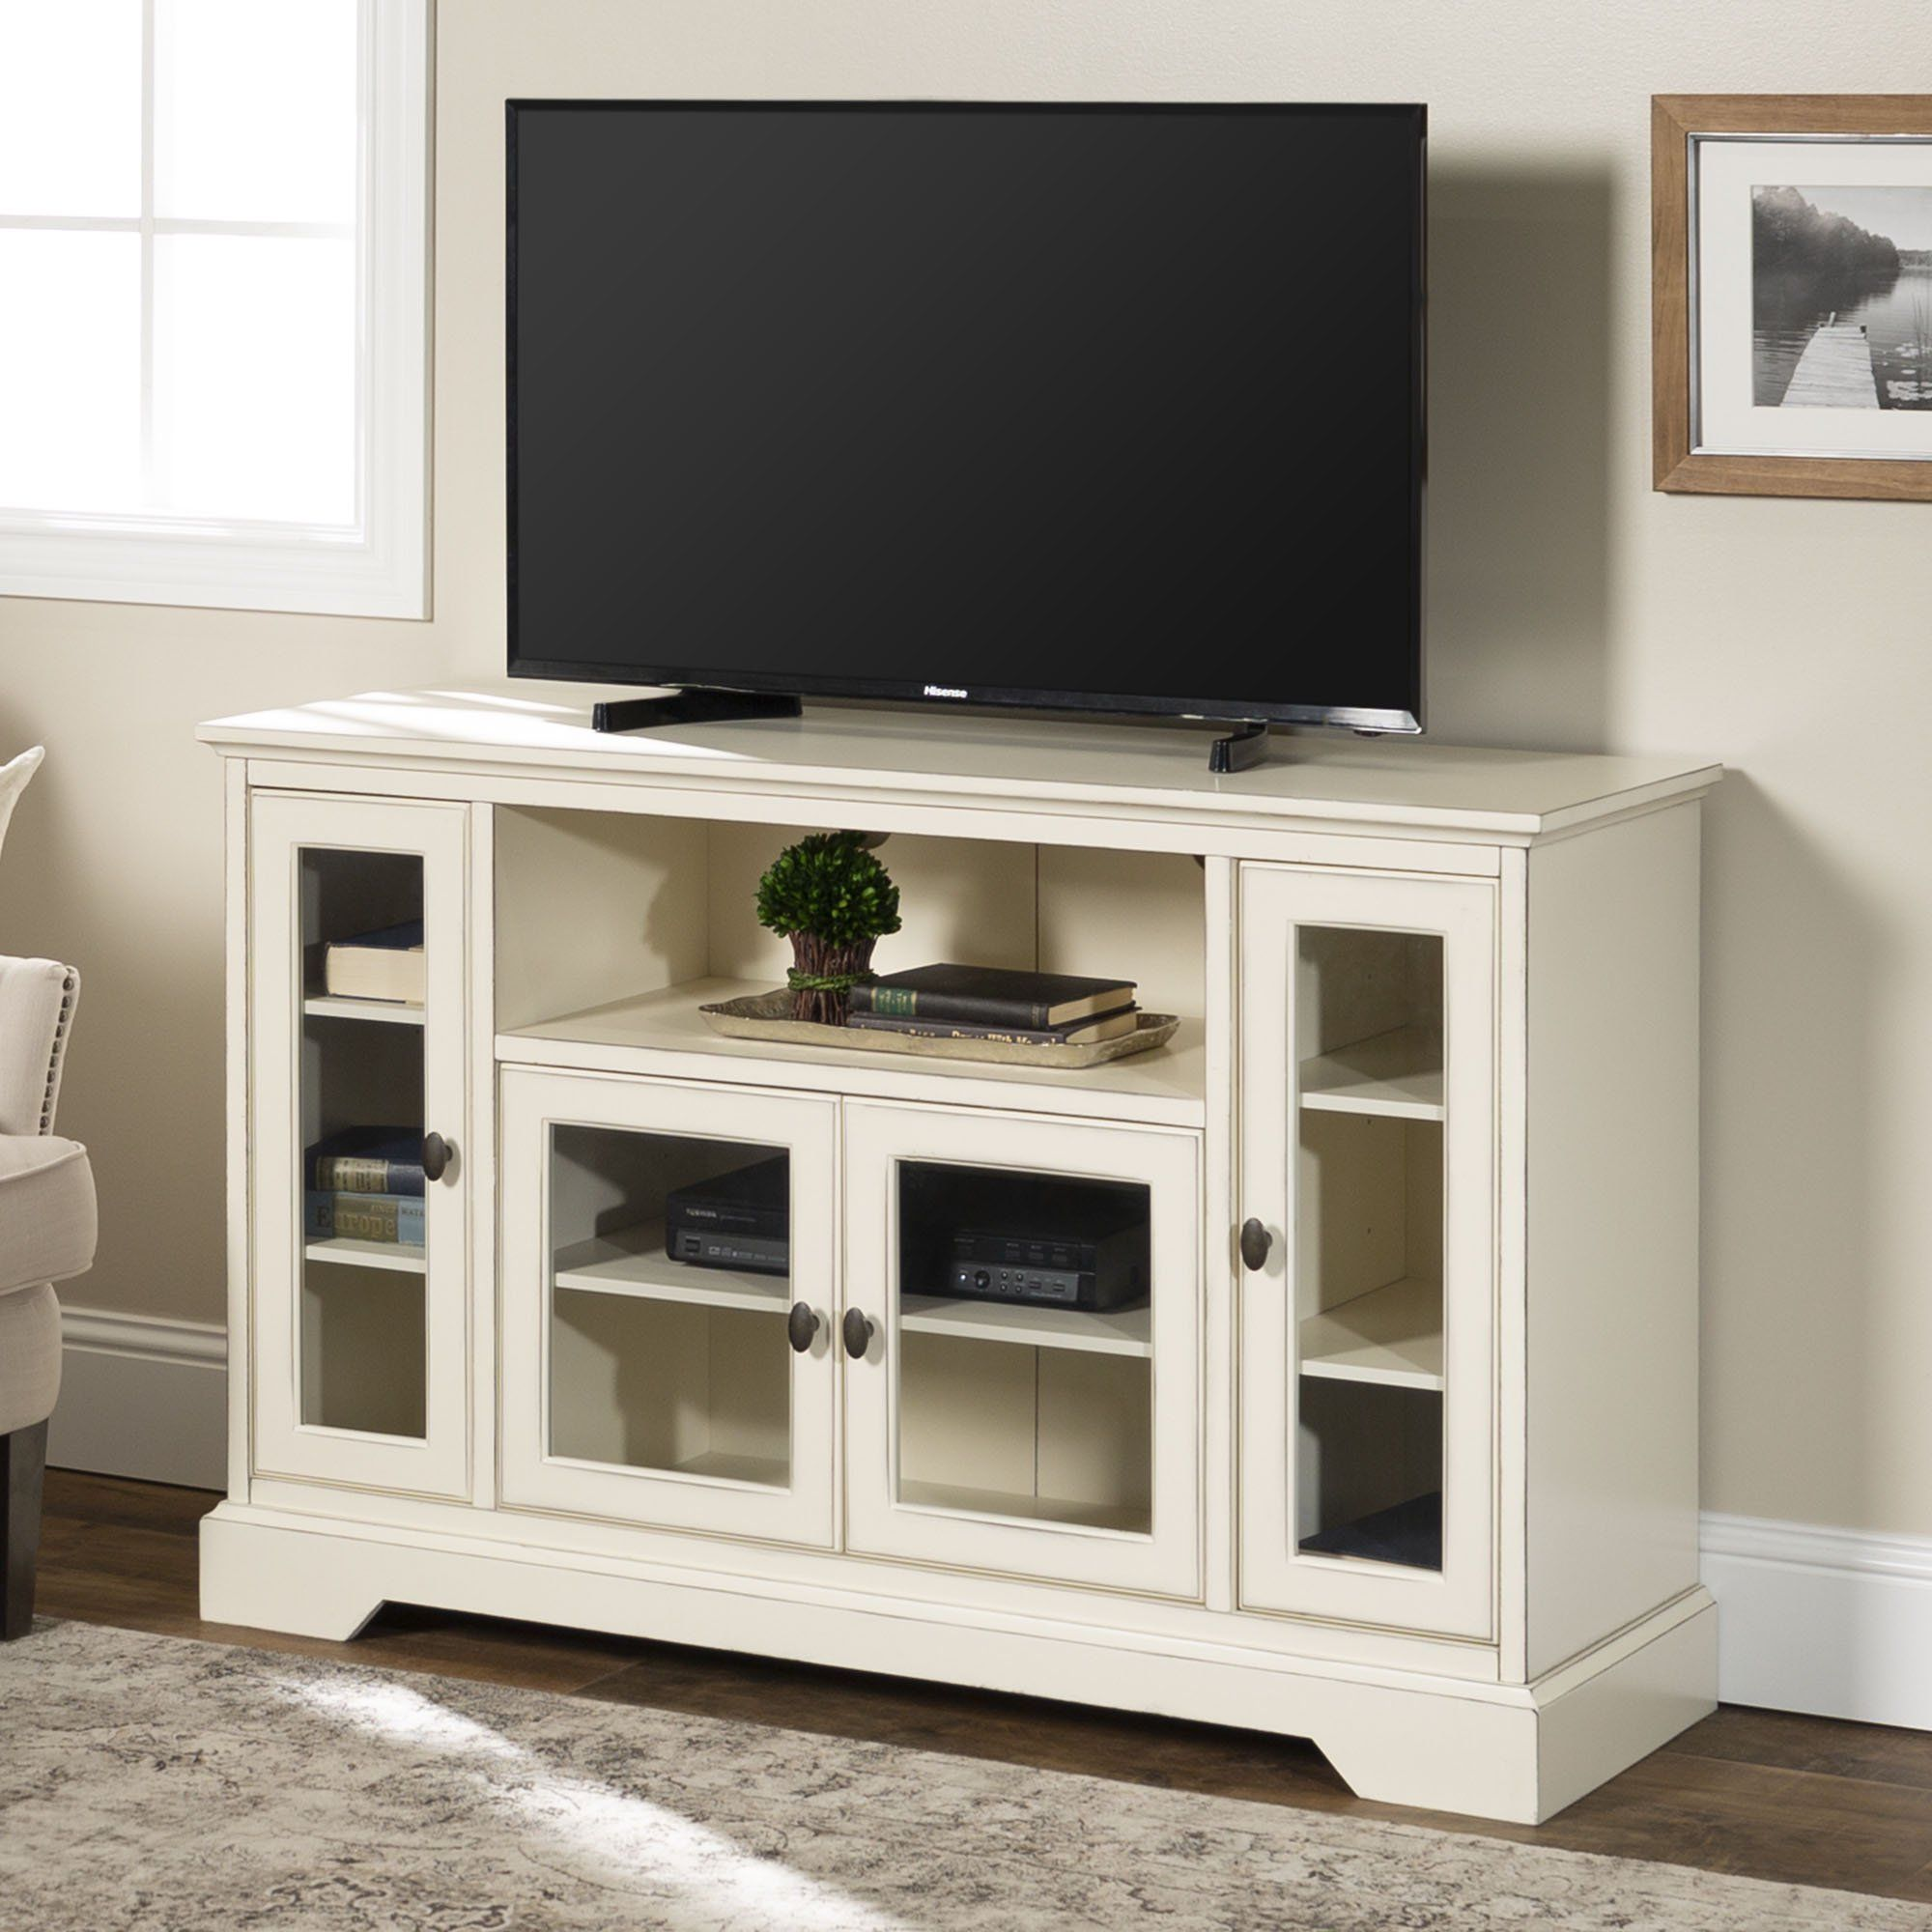 Highboy Style Wood Media Storage Antique White Tv Stand By Manor Park Walmart Com Tv Stand Console Highboy Tv Stand Furniture Deals